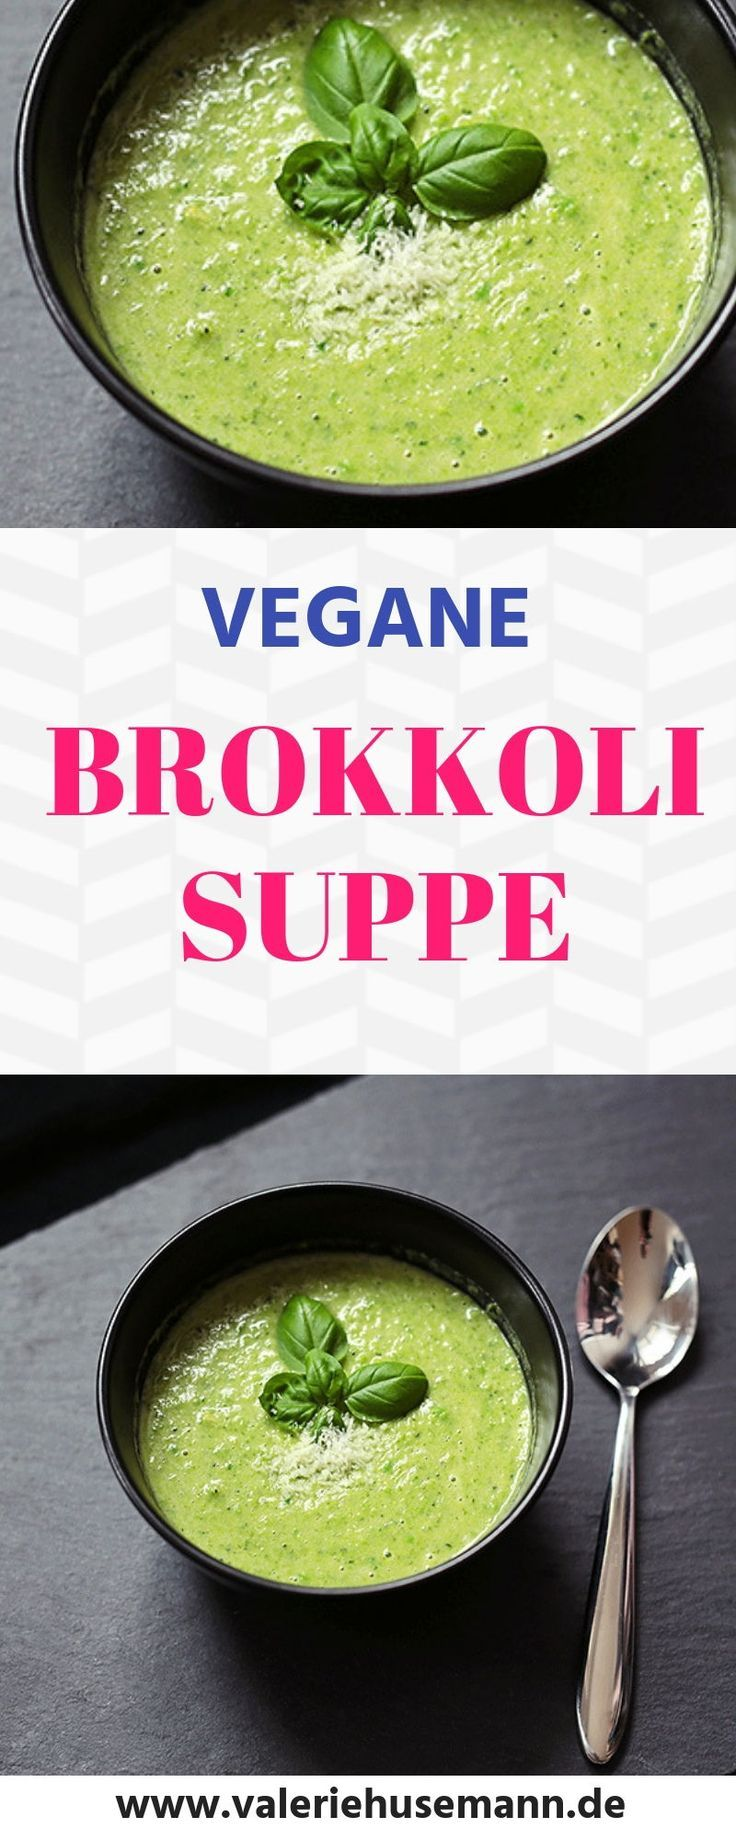 Brokkoli-Suppe, vegan #summerdinneroutfits